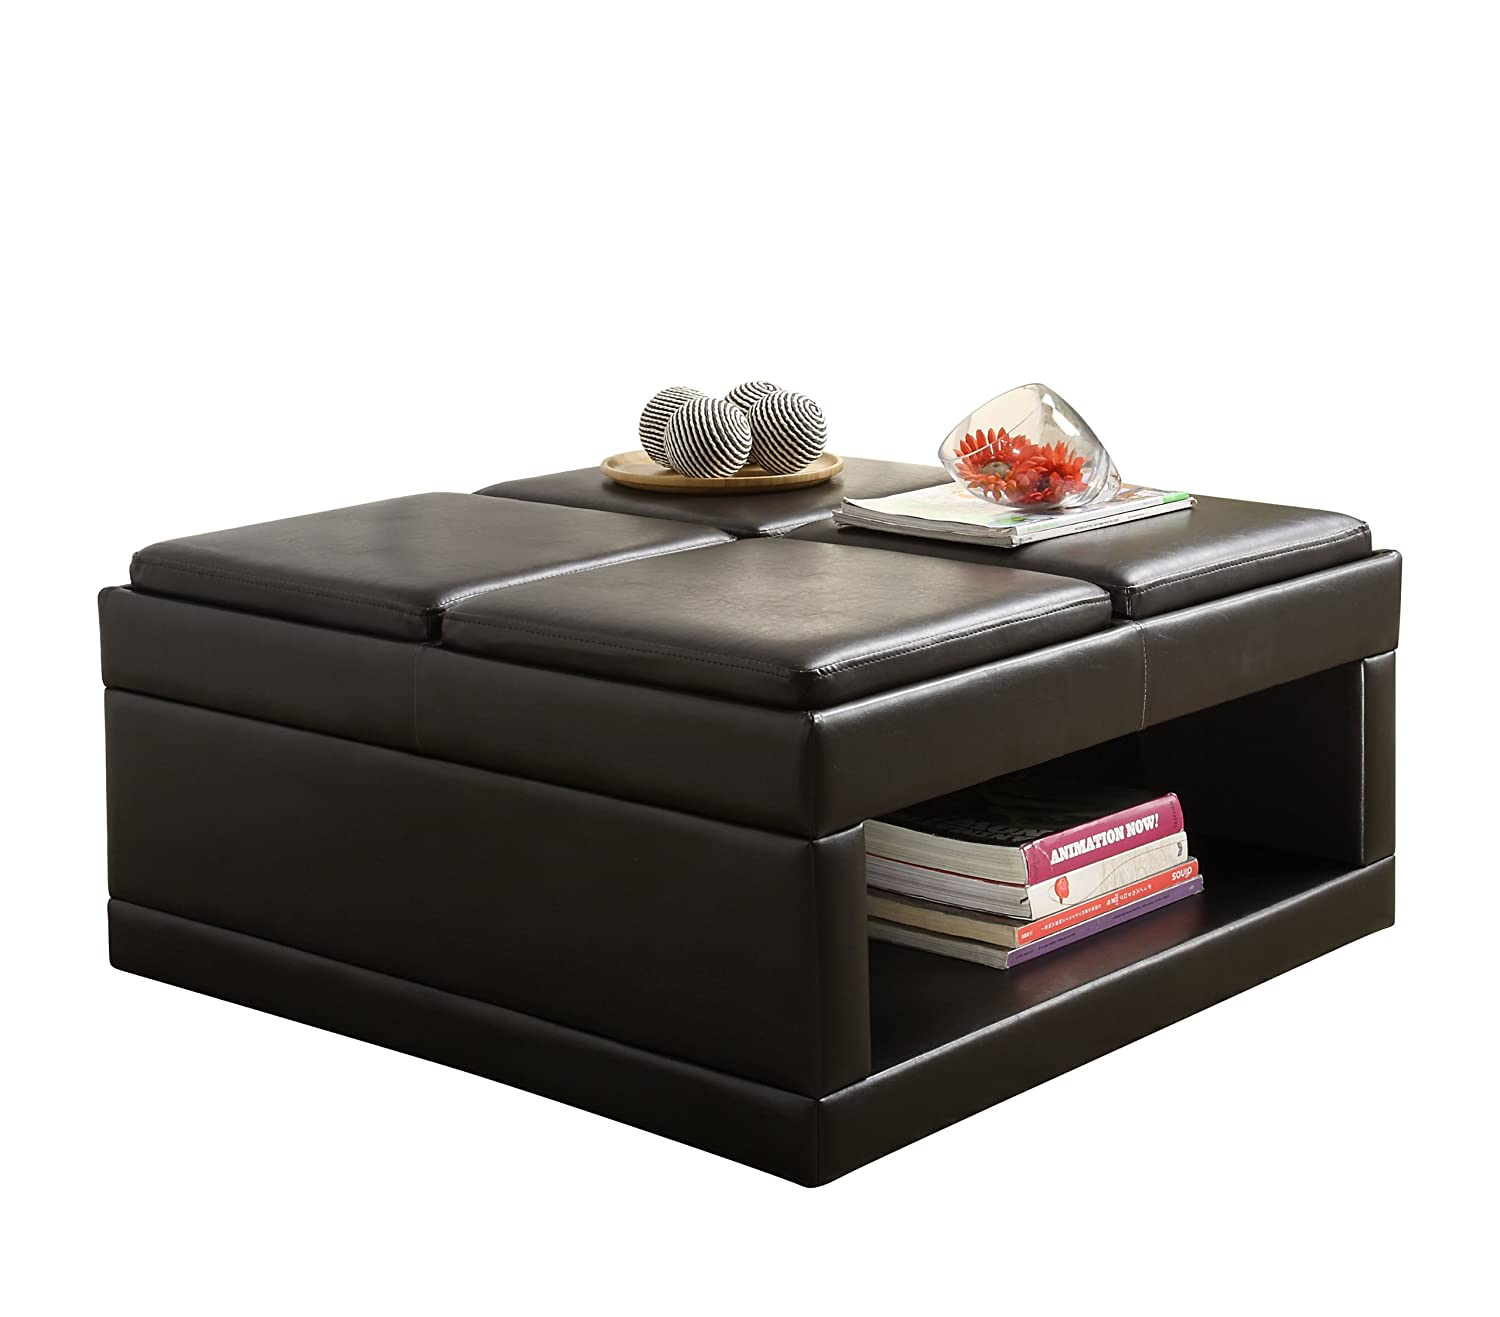 Charmant Amazon.com: Homelegance 4732PU Castered Cocktail Ottoman Table, Dark Brown  Faux Leather: Kitchen U0026 Dining